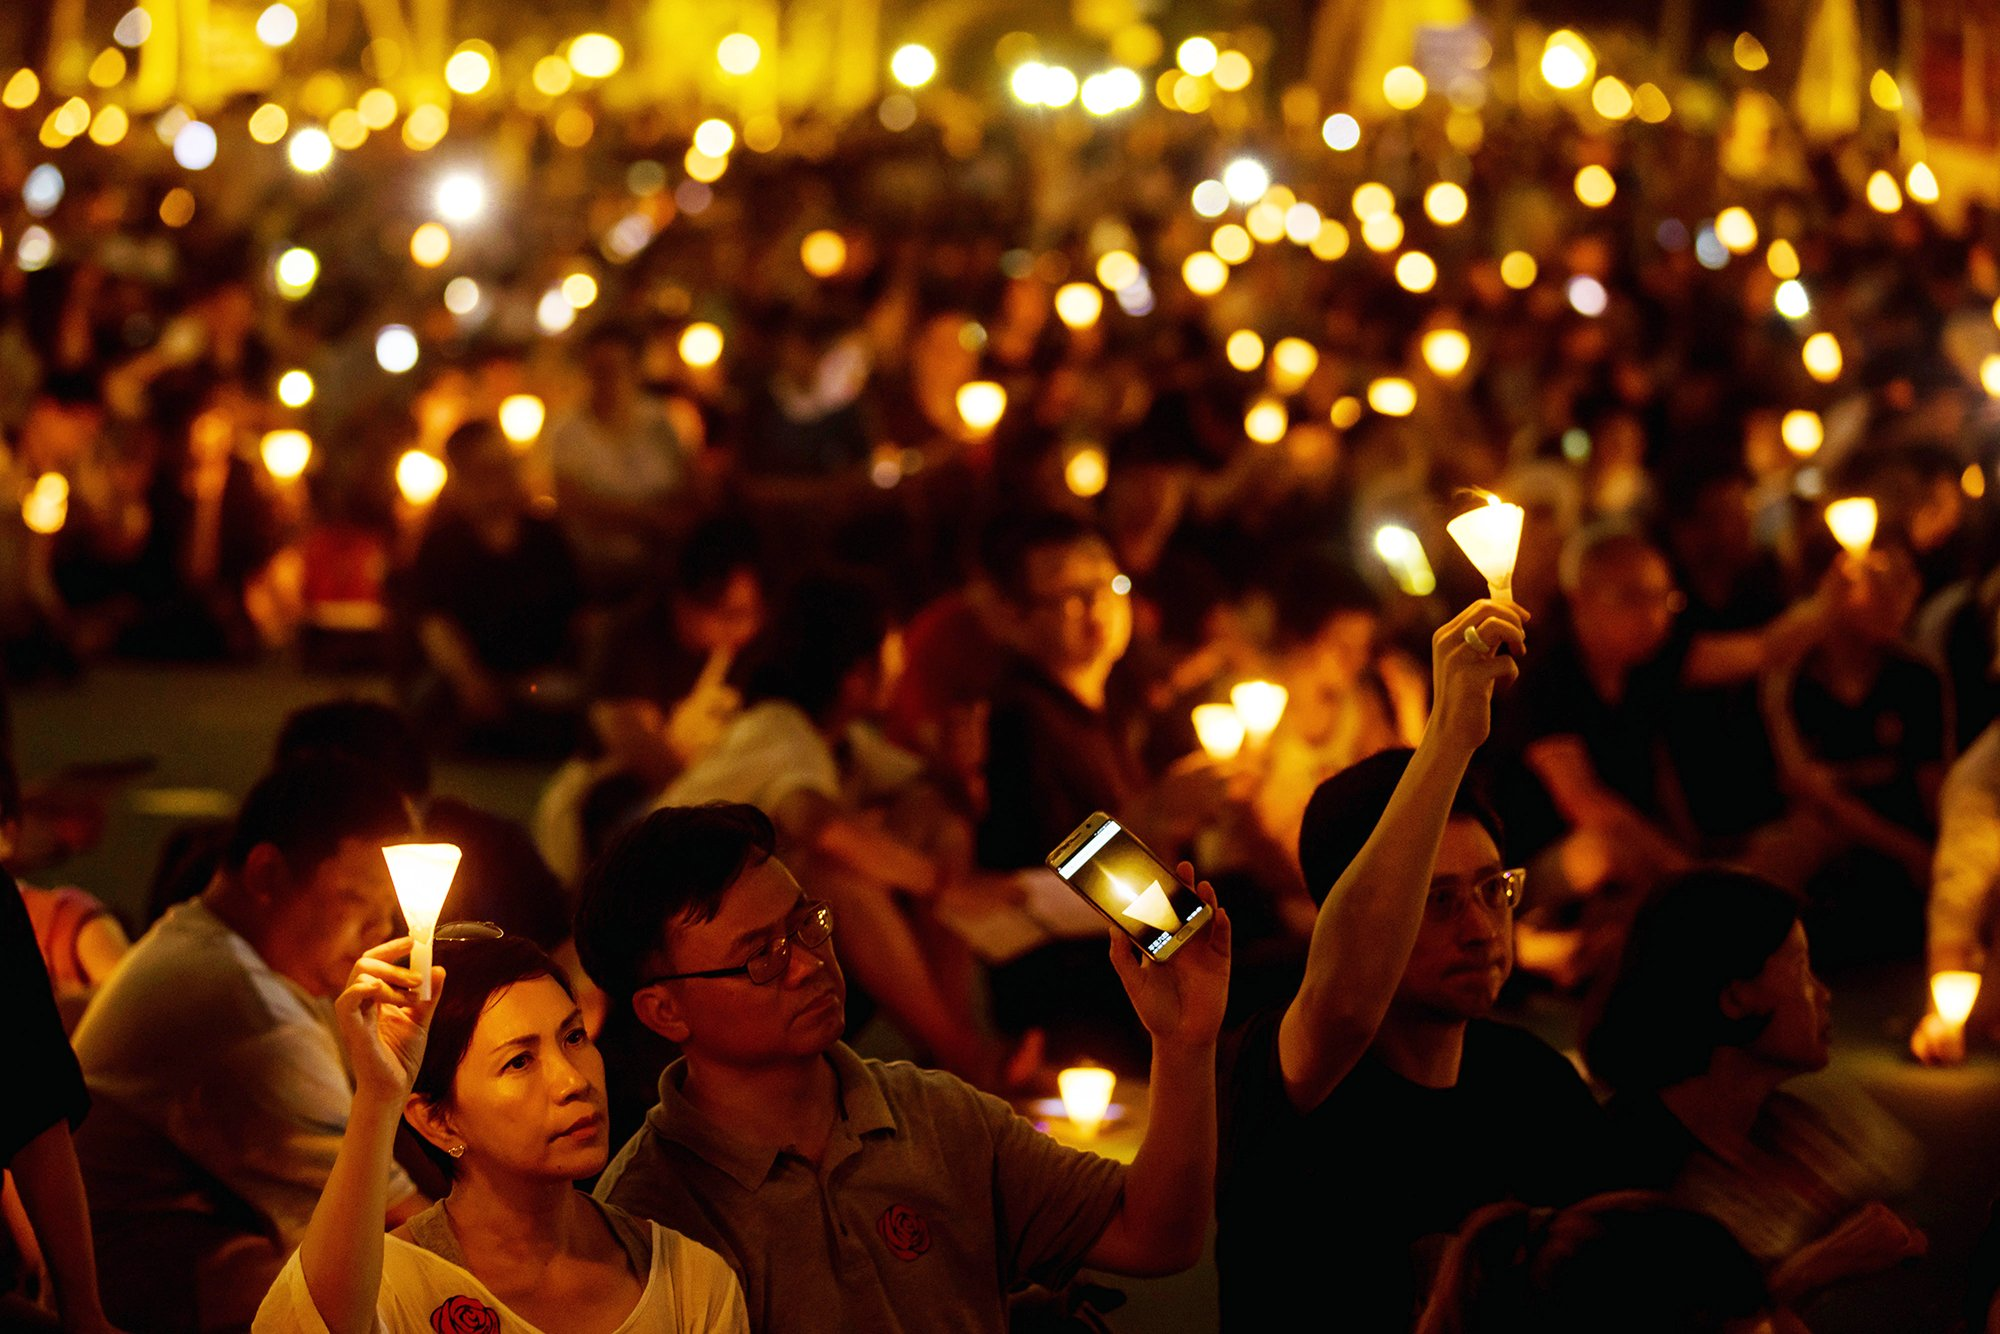 Demonstrators attend a candlelight vigil at Victoria Park in Hong Kong, on June 4, 2017.  (Photo courtesy: Time Magazine)